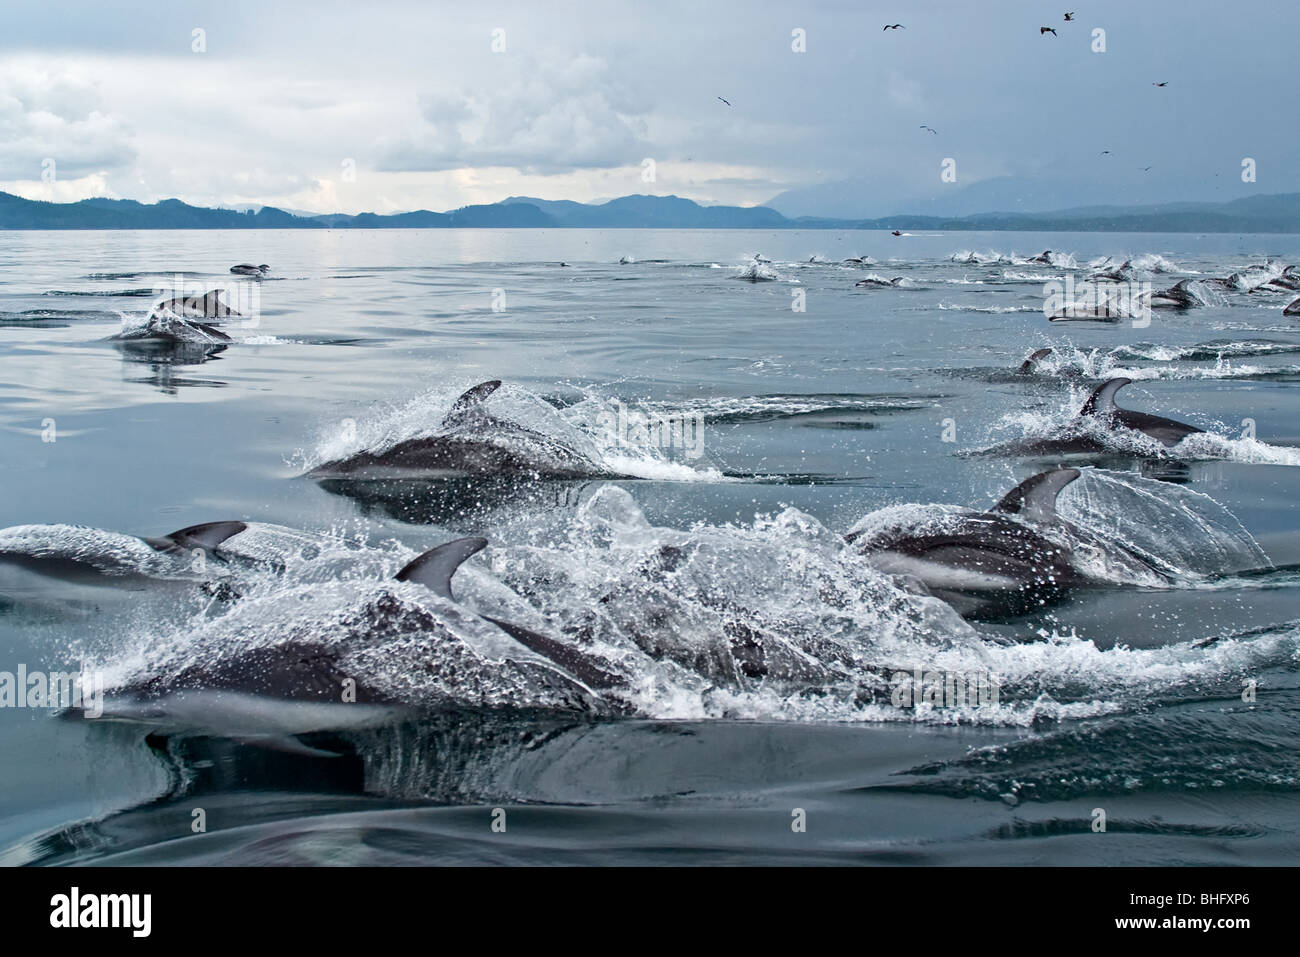 Pacific white sided dolphins in Queen Charlotte Strait, British Columbia, Canada. Lagenorhynchus obliquidens - Stock Image